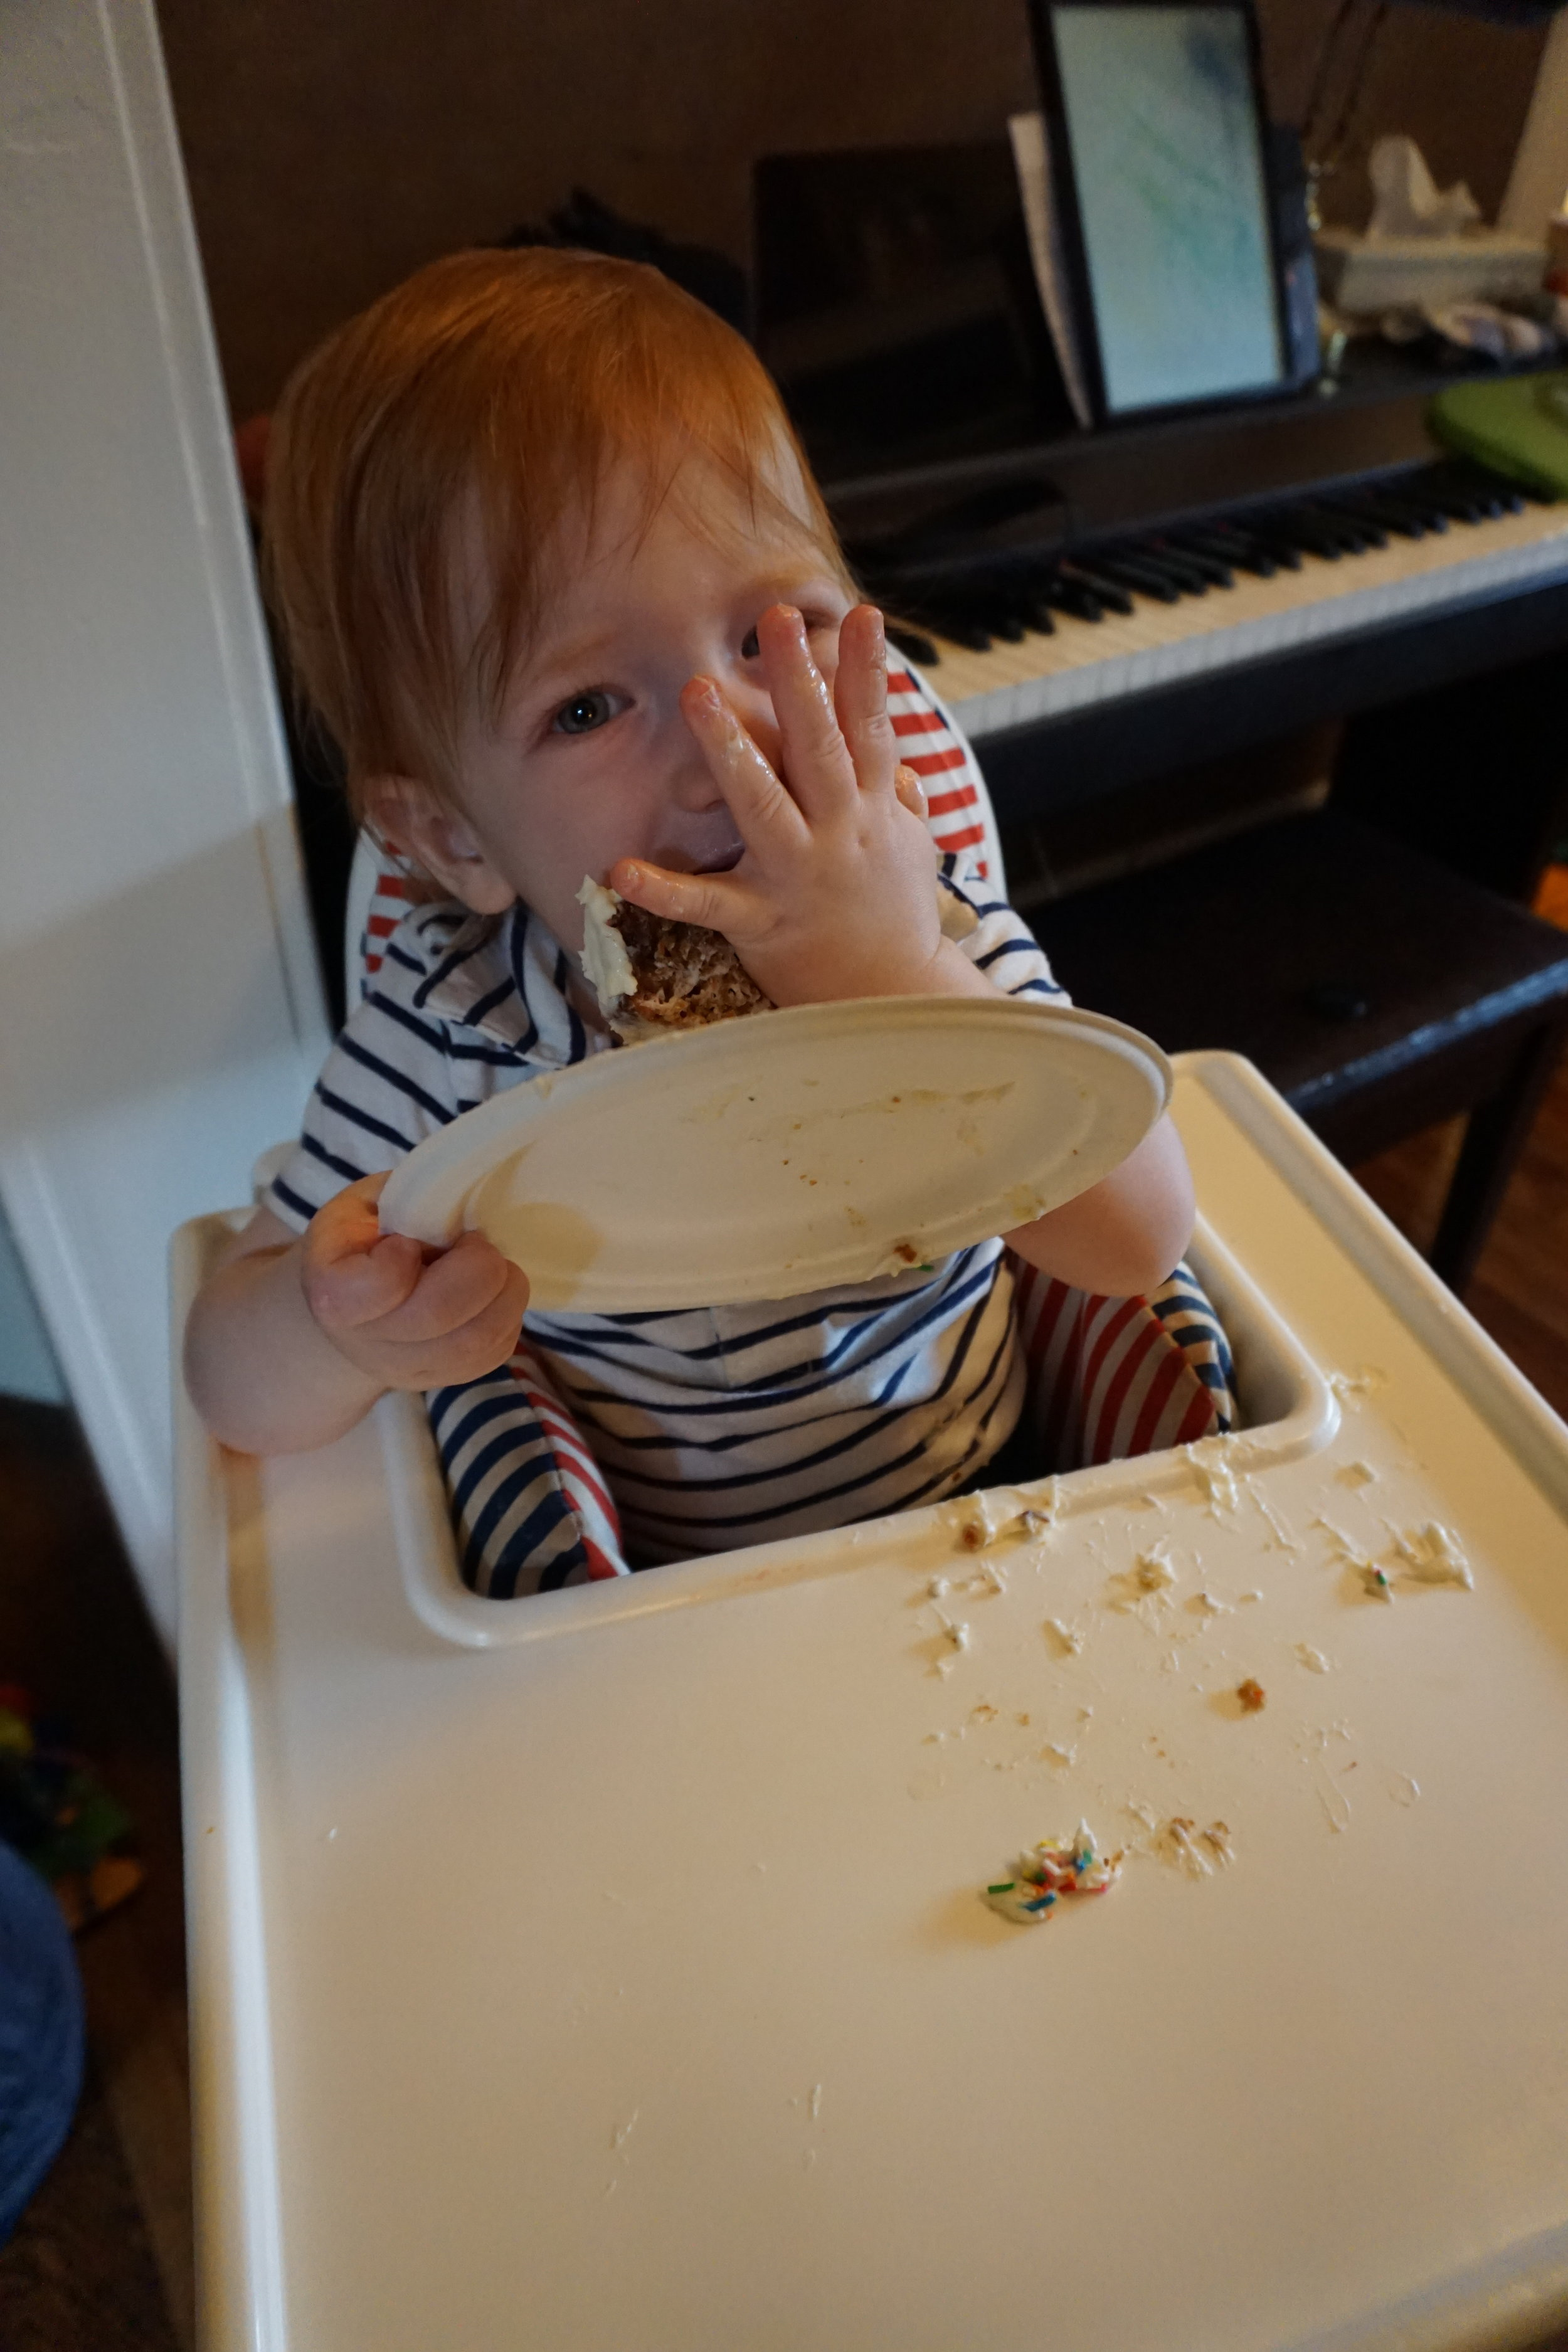 Daddy made carrot cake with maple cream cheese frosting. You made…a mess.